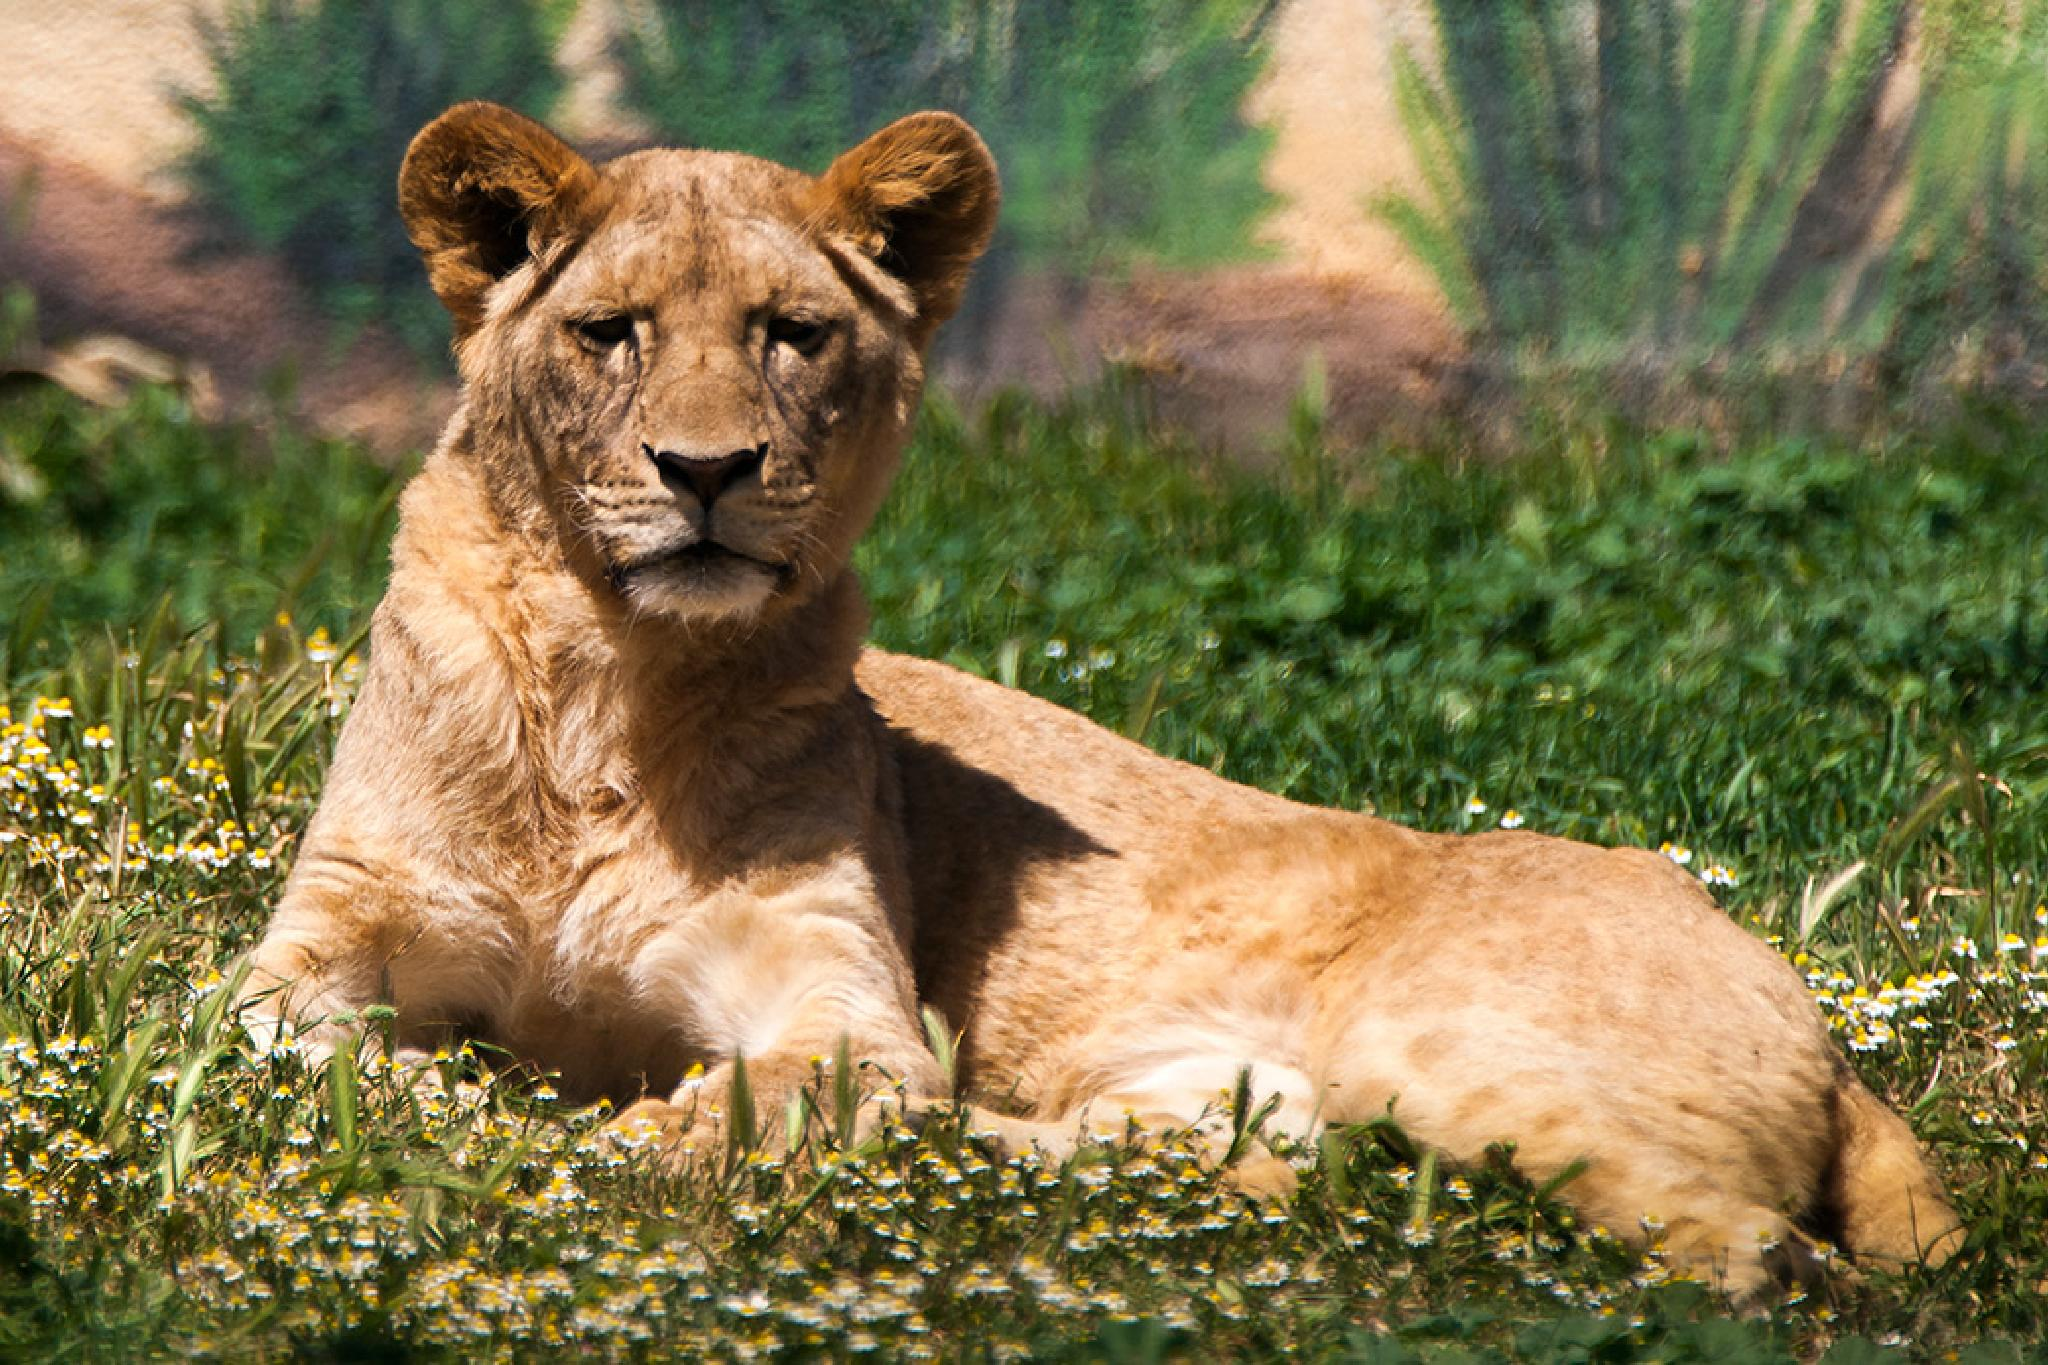 The Southwest African lion by Sotiris Siomis